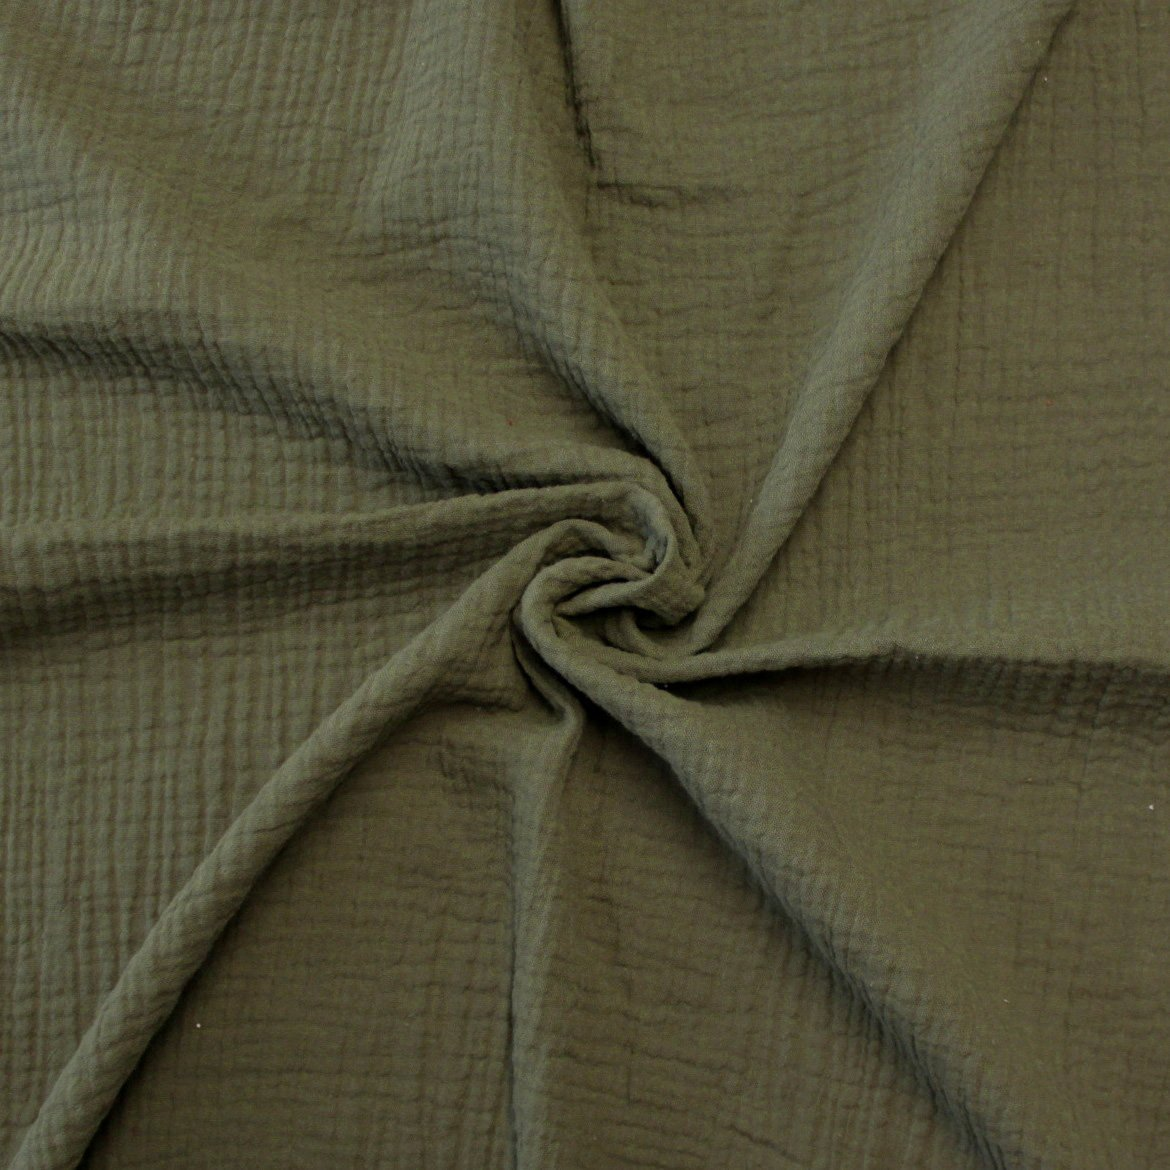 Olive Green Woven Cotton Light Weight Double Gauze Fabric Raspberry Creek Fabrics